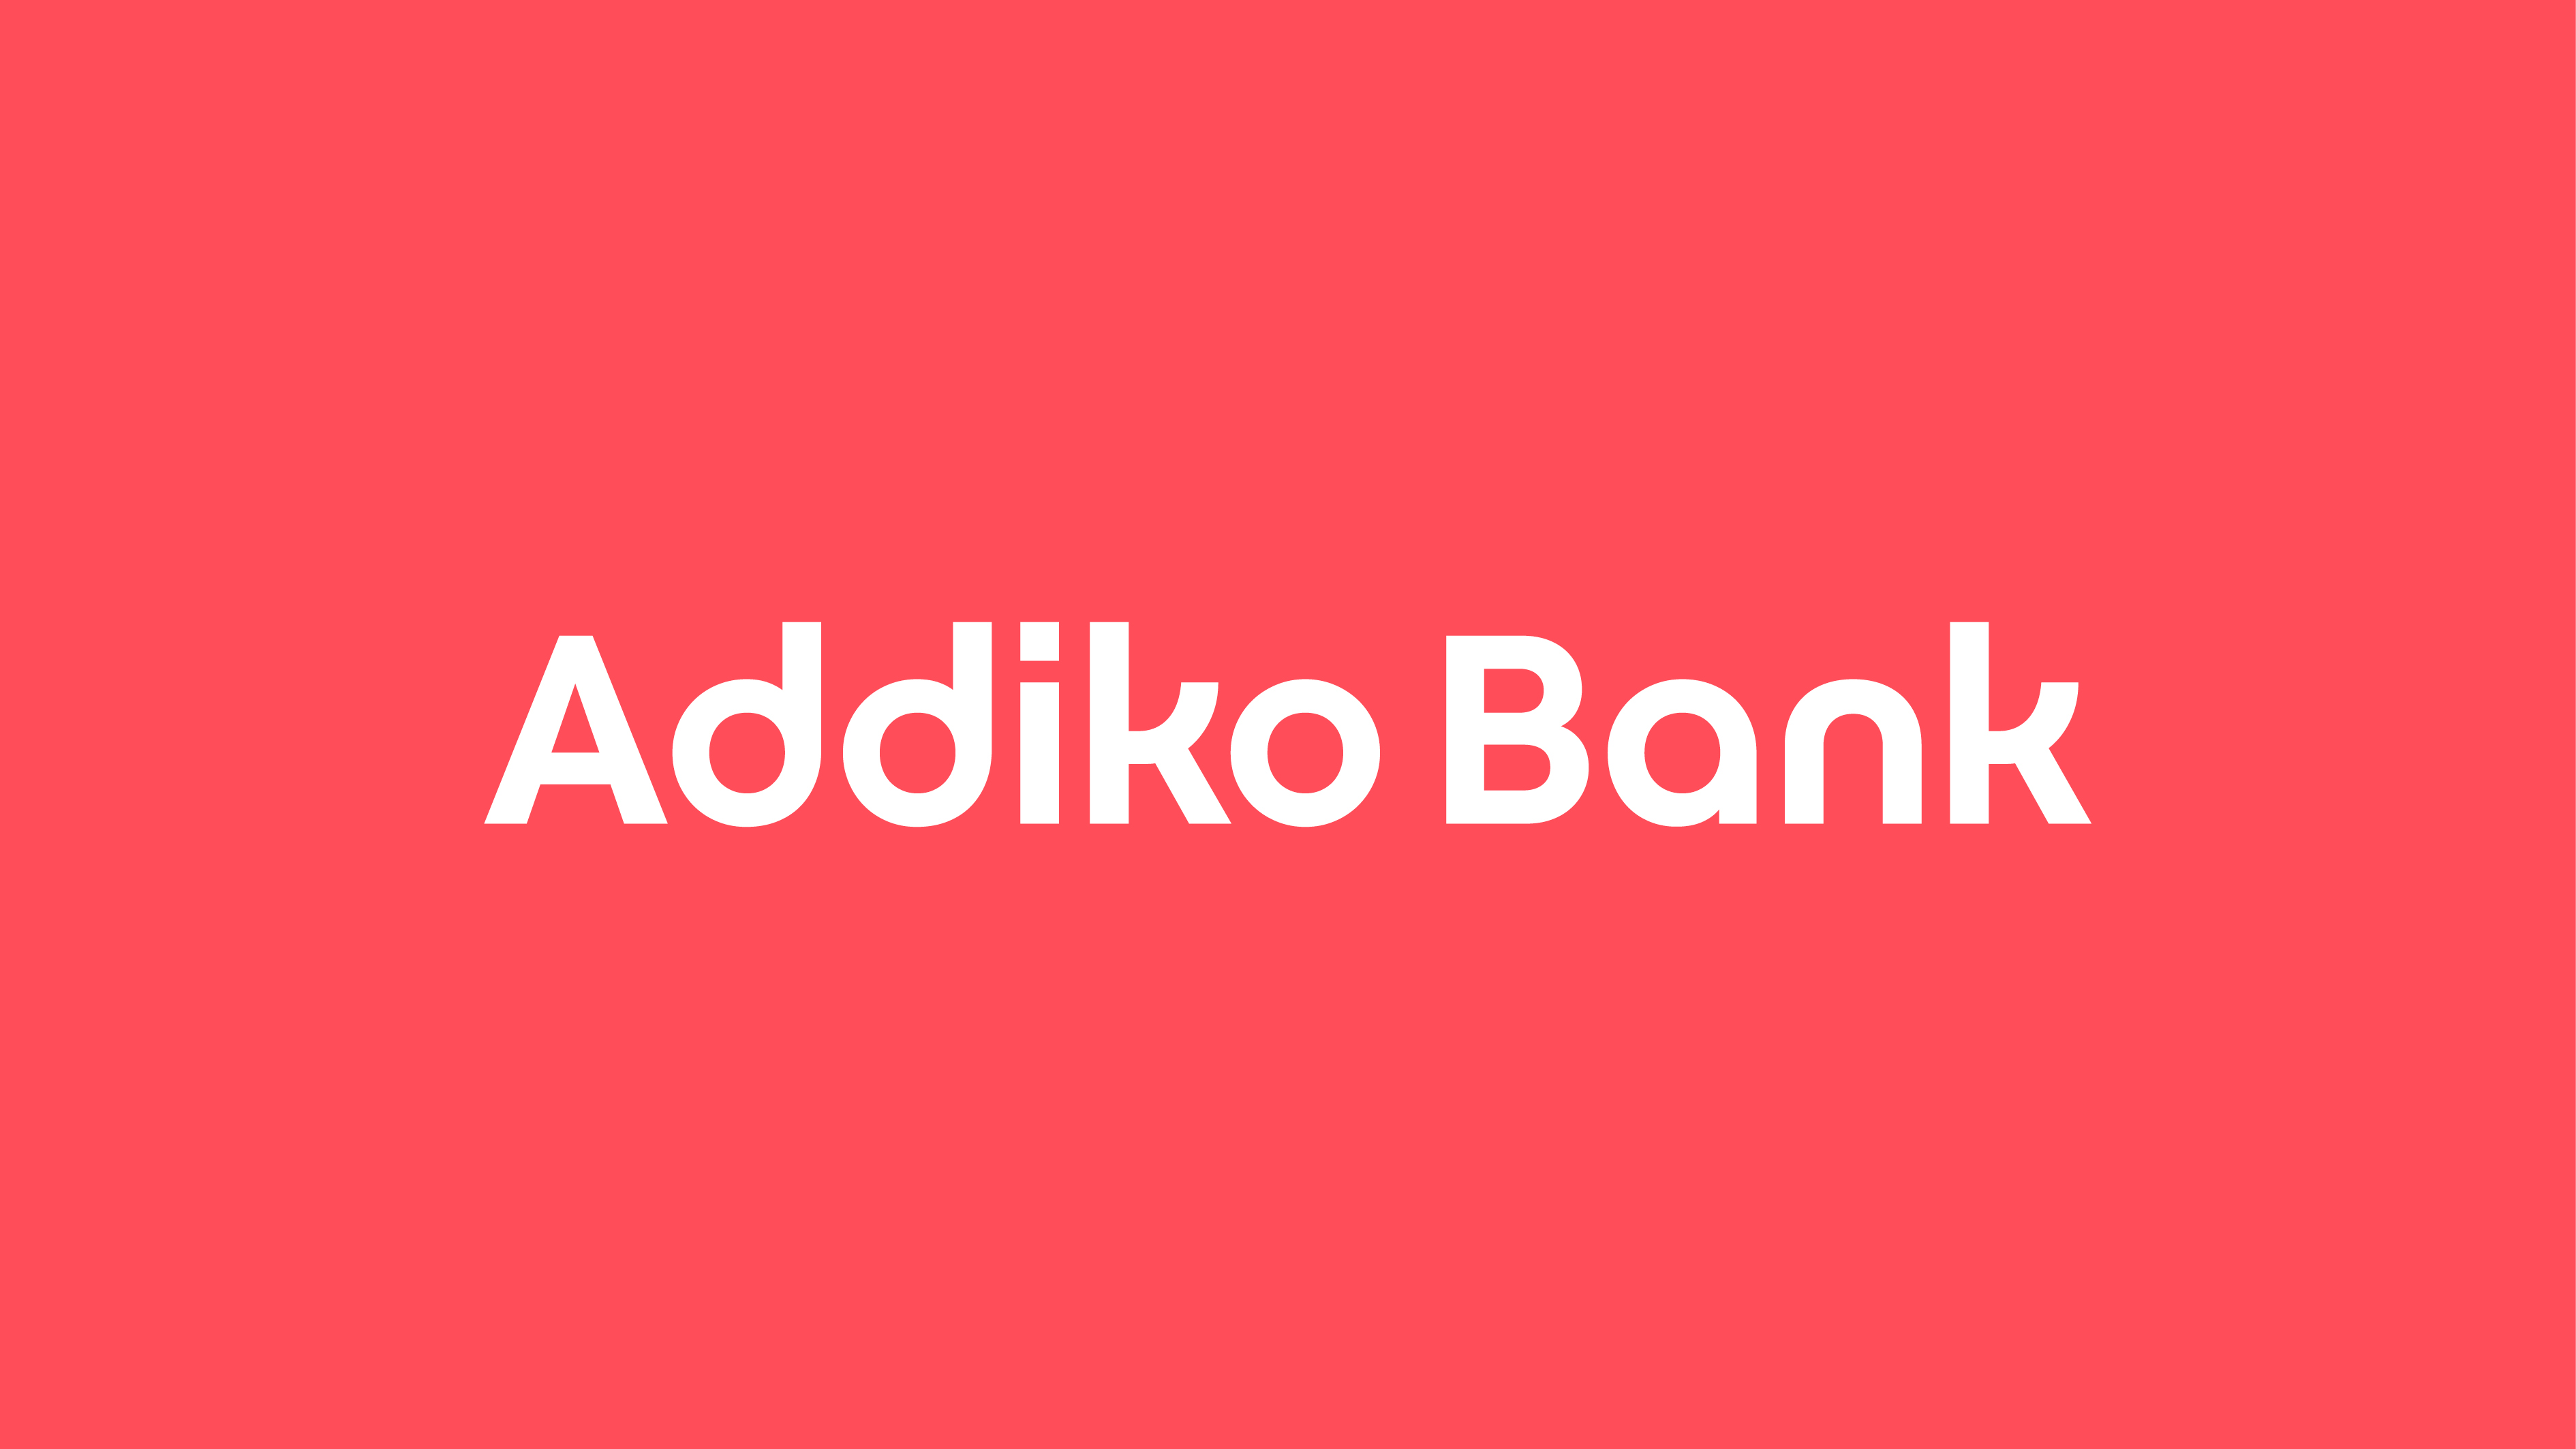 Addiko_16by9_Press_Release_1